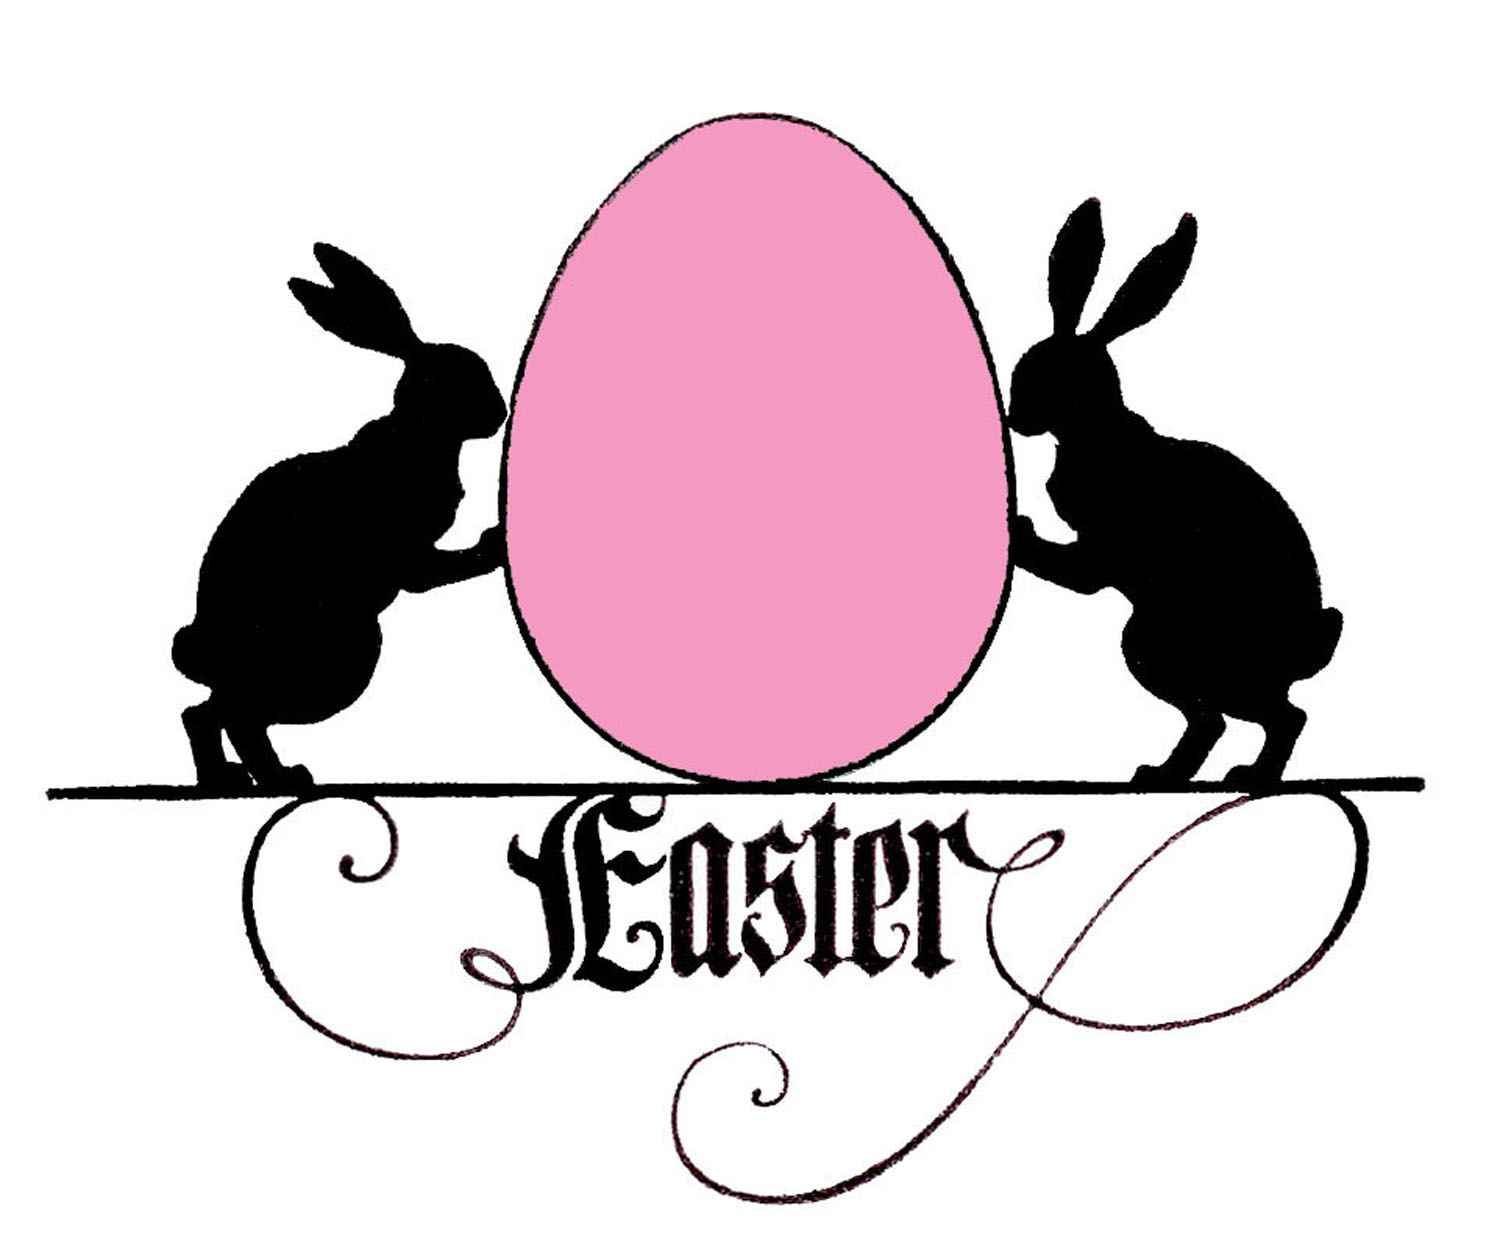 hight resolution of 1500x1255 vintage easter images